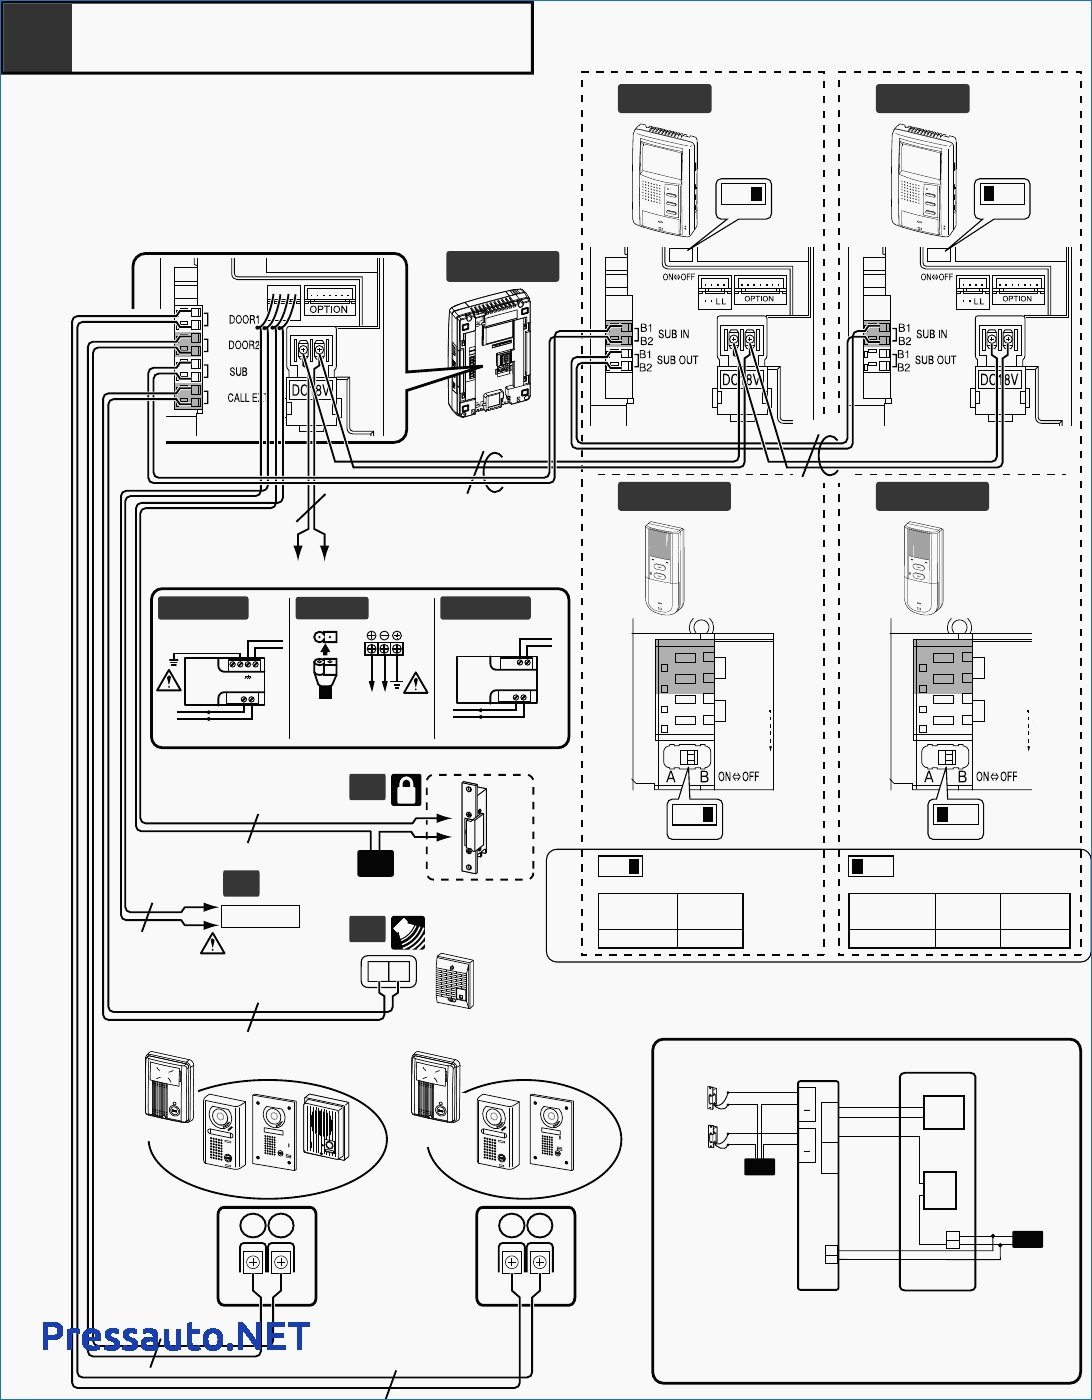 intermatic k4221c wiring diagram Collection-K4221c Wiring Diagram Best AiPhone Wiring Diagram Pressauto Net Inside Electric Cell 13-l